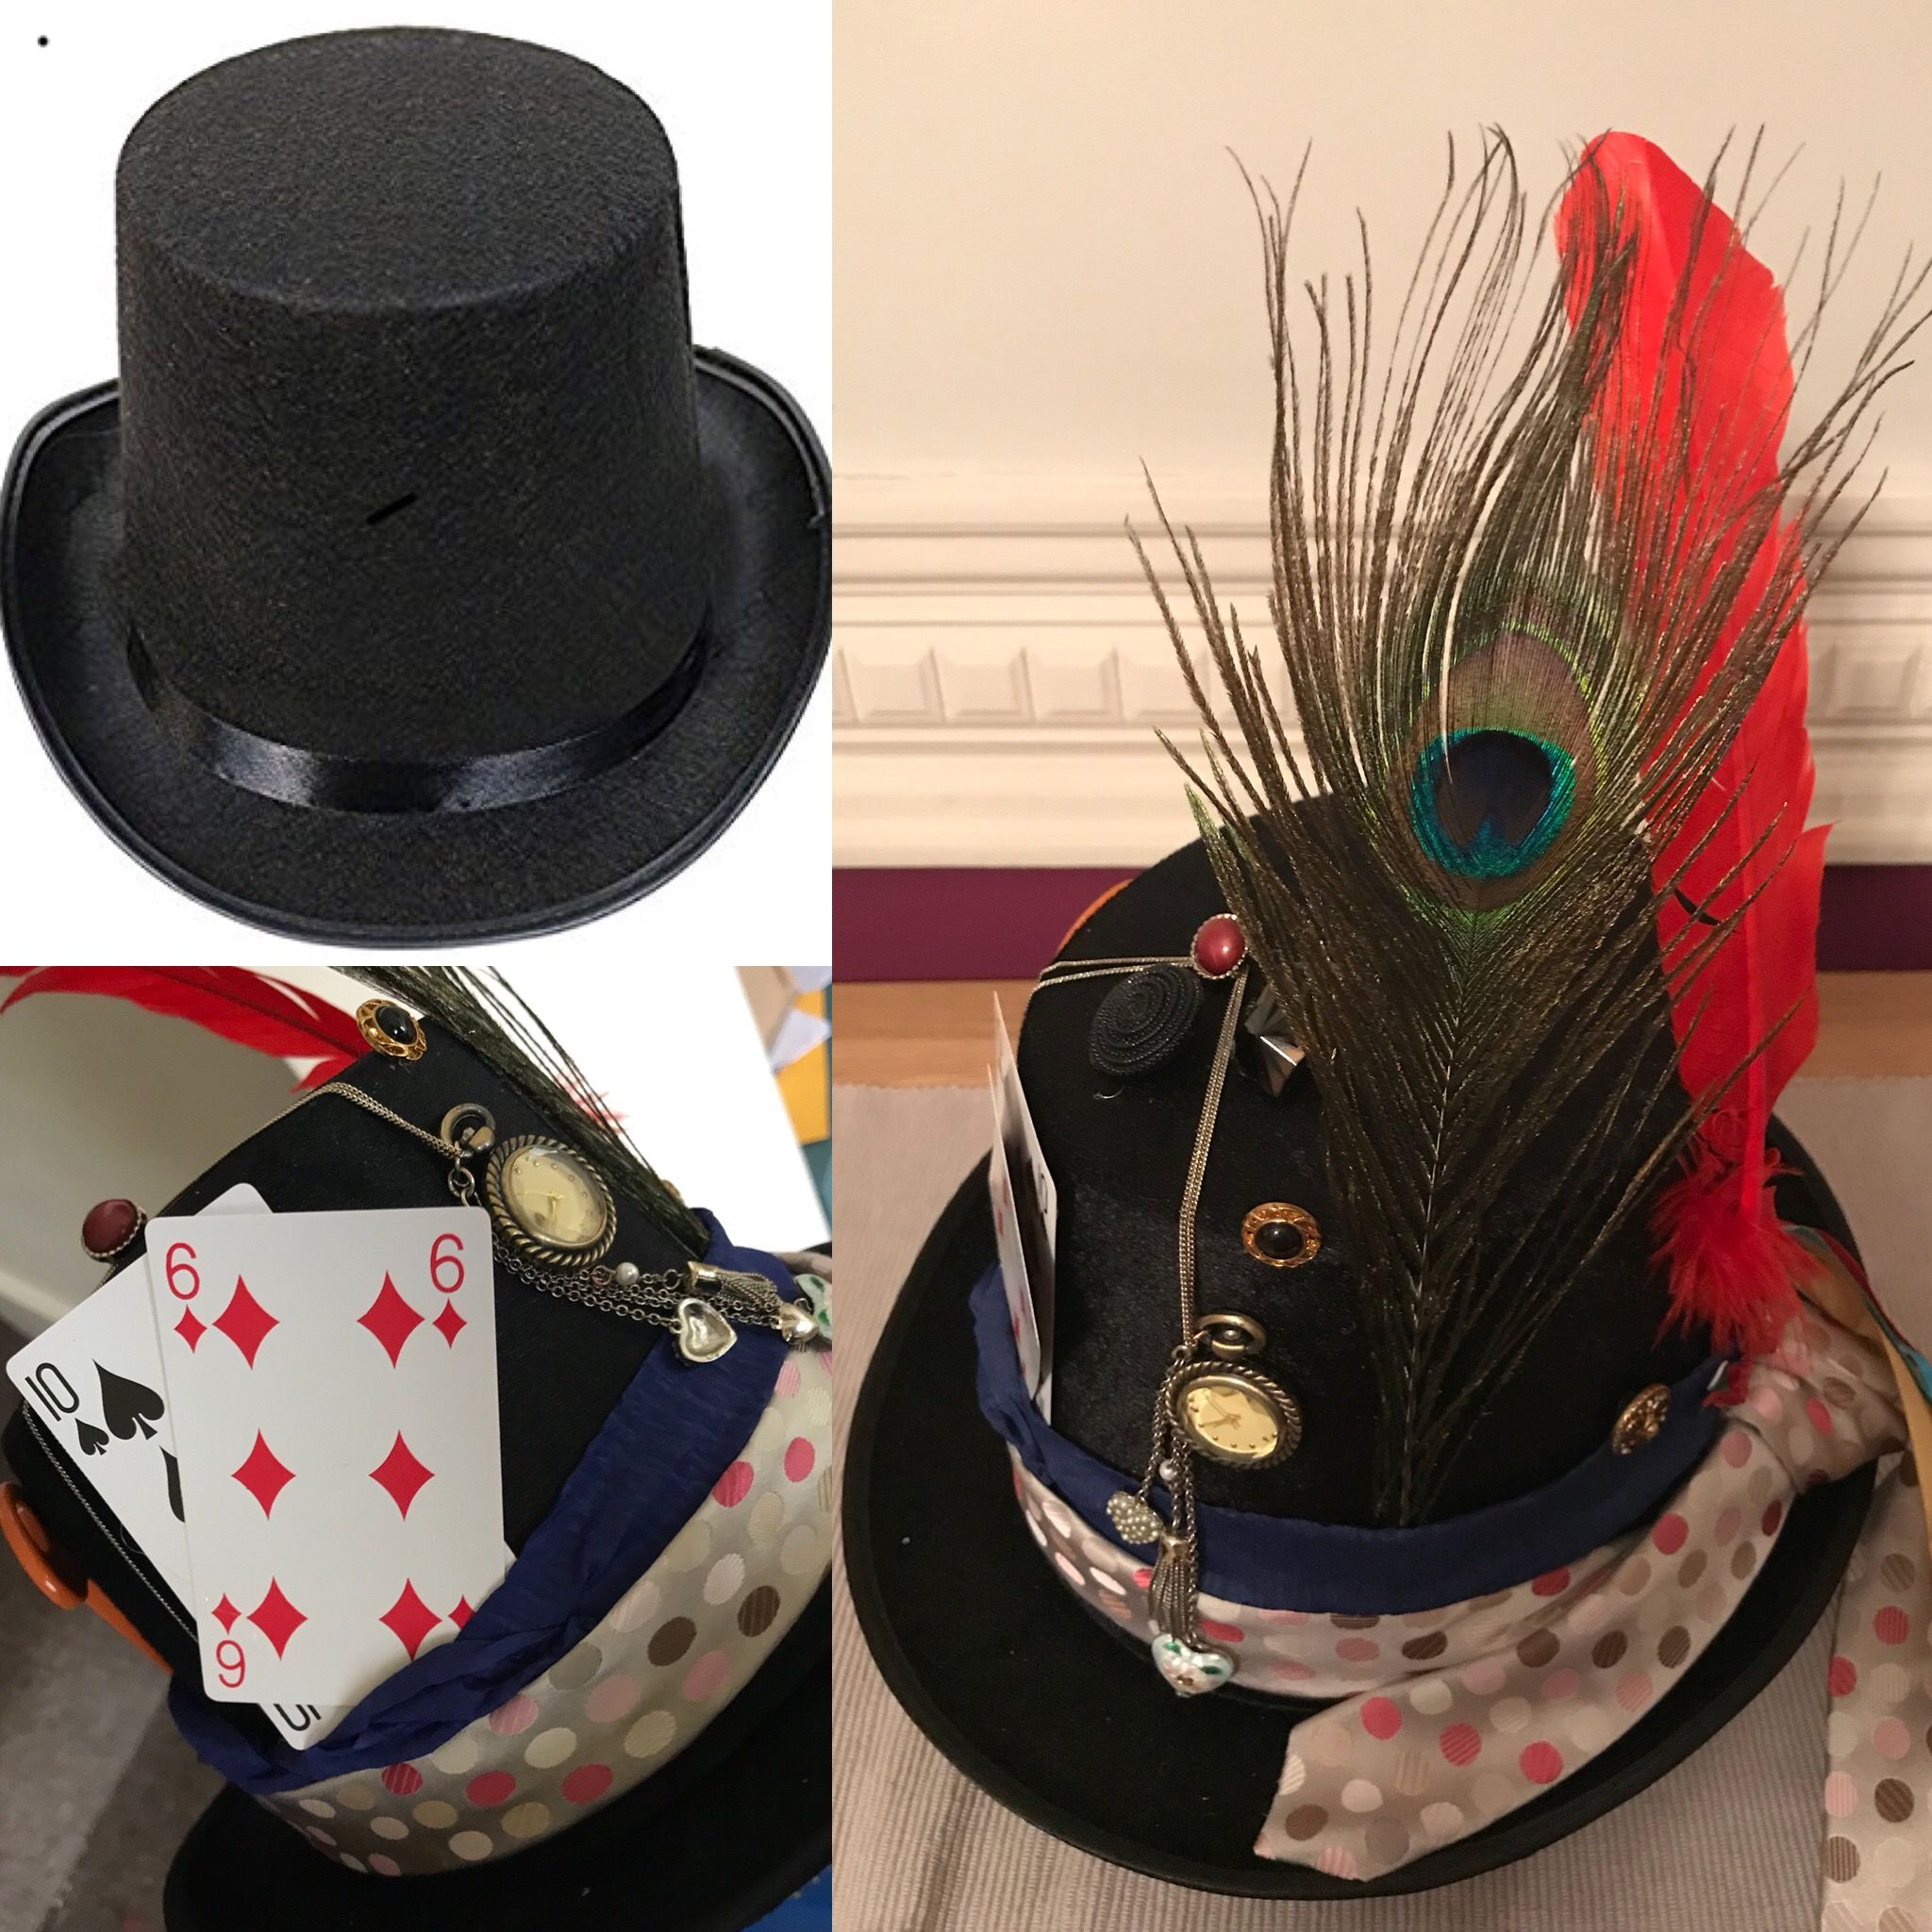 Easy Mad Hatter S Hat 1 Top Hat 4 50 Amazon 2 Craft Feathers Hobbycraft 3 An Old Tie 4 10 6 Playing Pocket Watch Necklace Old Ties Feather Crafts